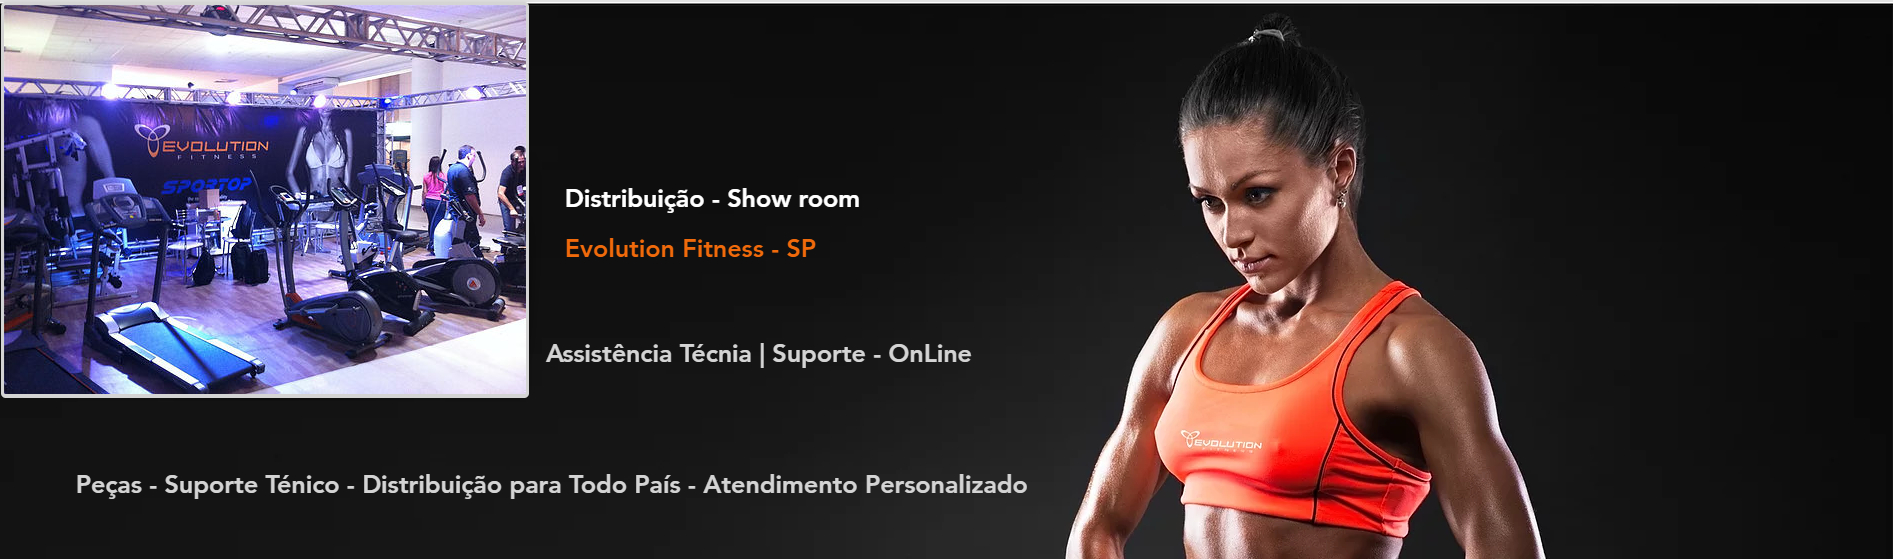 Assisência Ténica Evolution Fitness